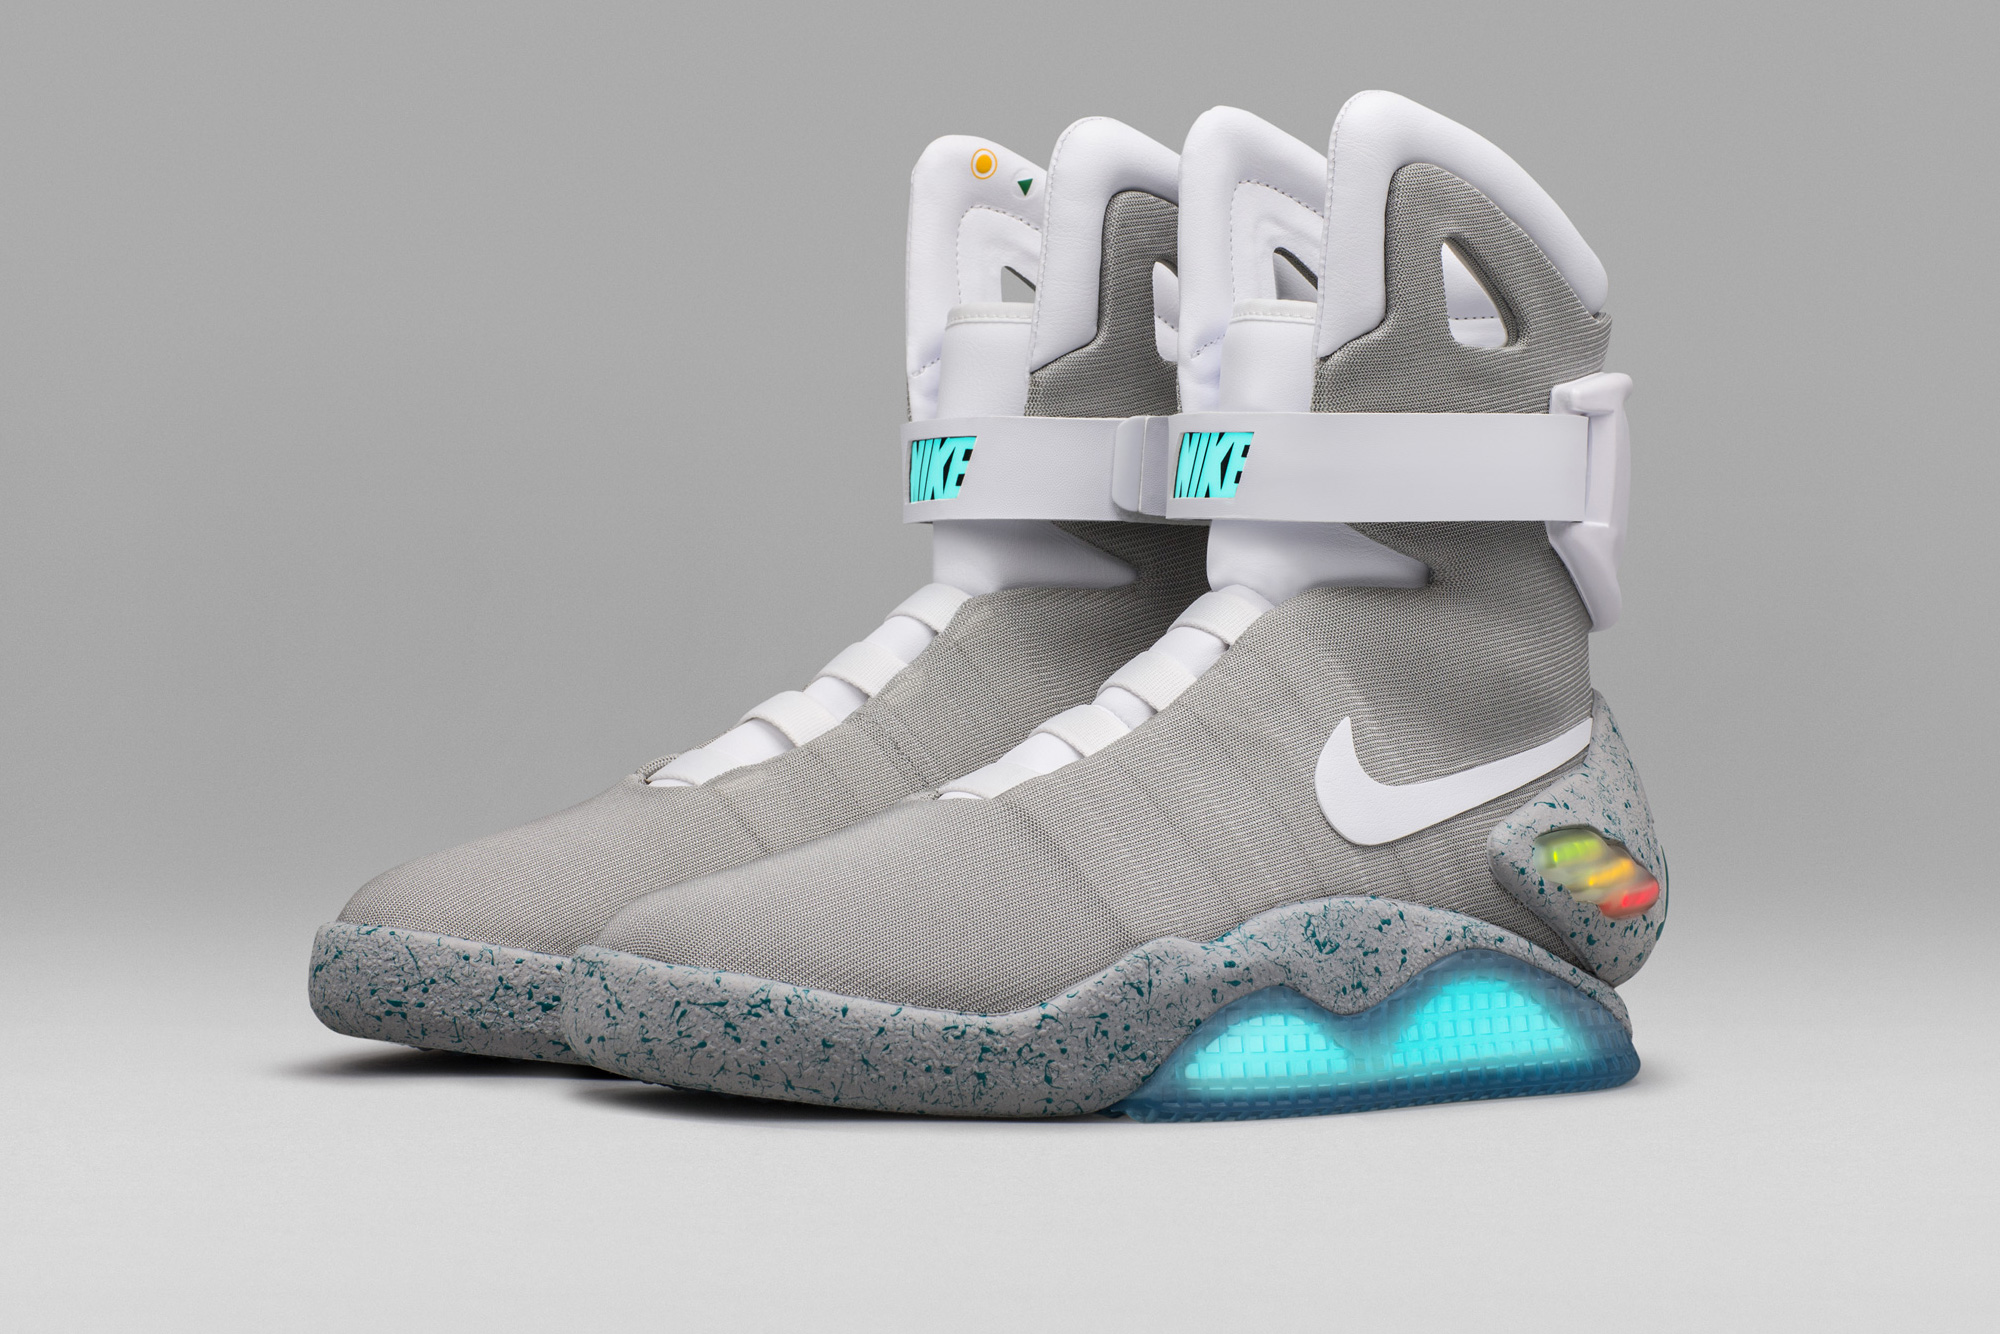 e95b771a56c The Nike Mag Self-Lacing Sneakers Are Finally Here, but They're Only ...